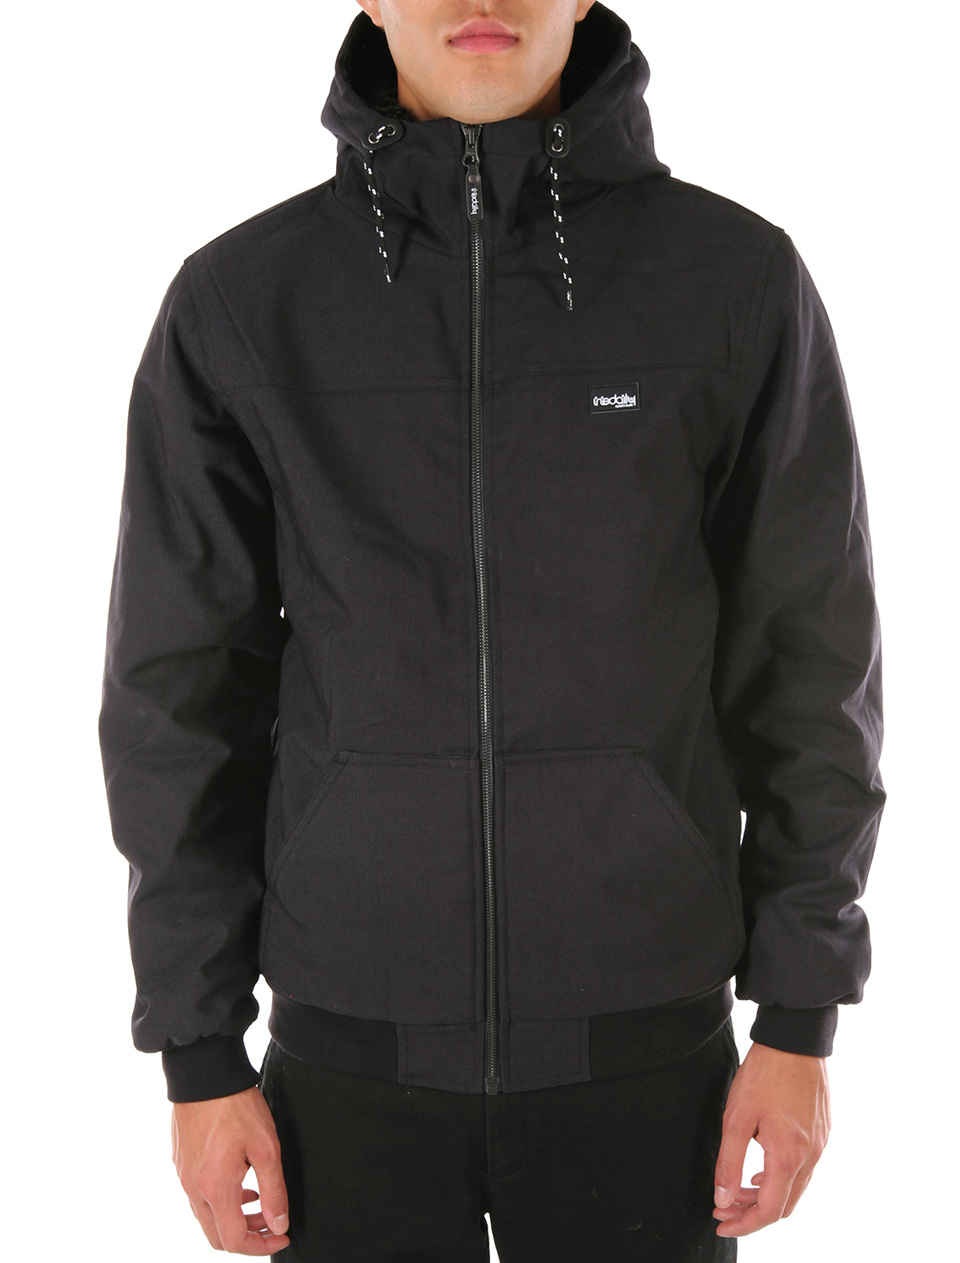 Dock36 Swing Jacket [black]